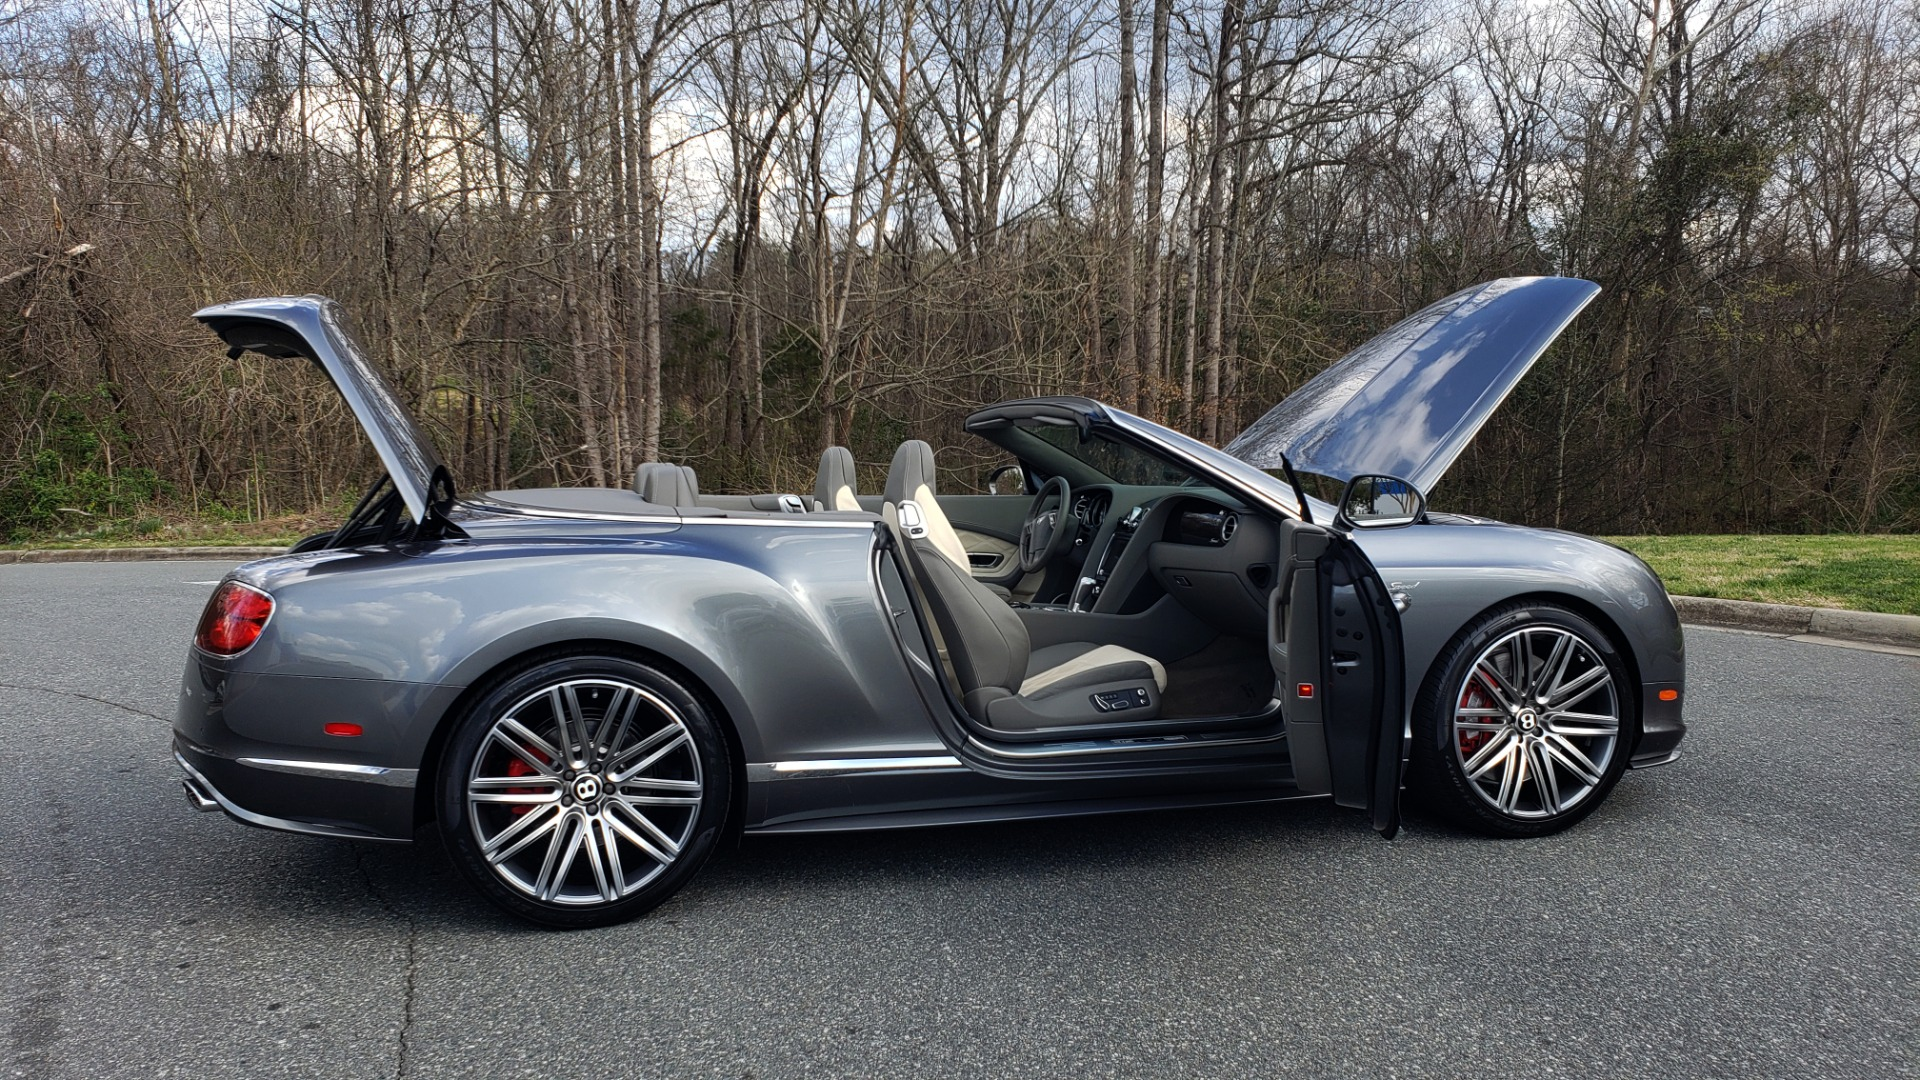 Used 2015 Bentley CONTINENTAL SPEED CONV / 6.0L W12 / NAV / VENT SEATS / REARVIEW for sale Sold at Formula Imports in Charlotte NC 28227 22